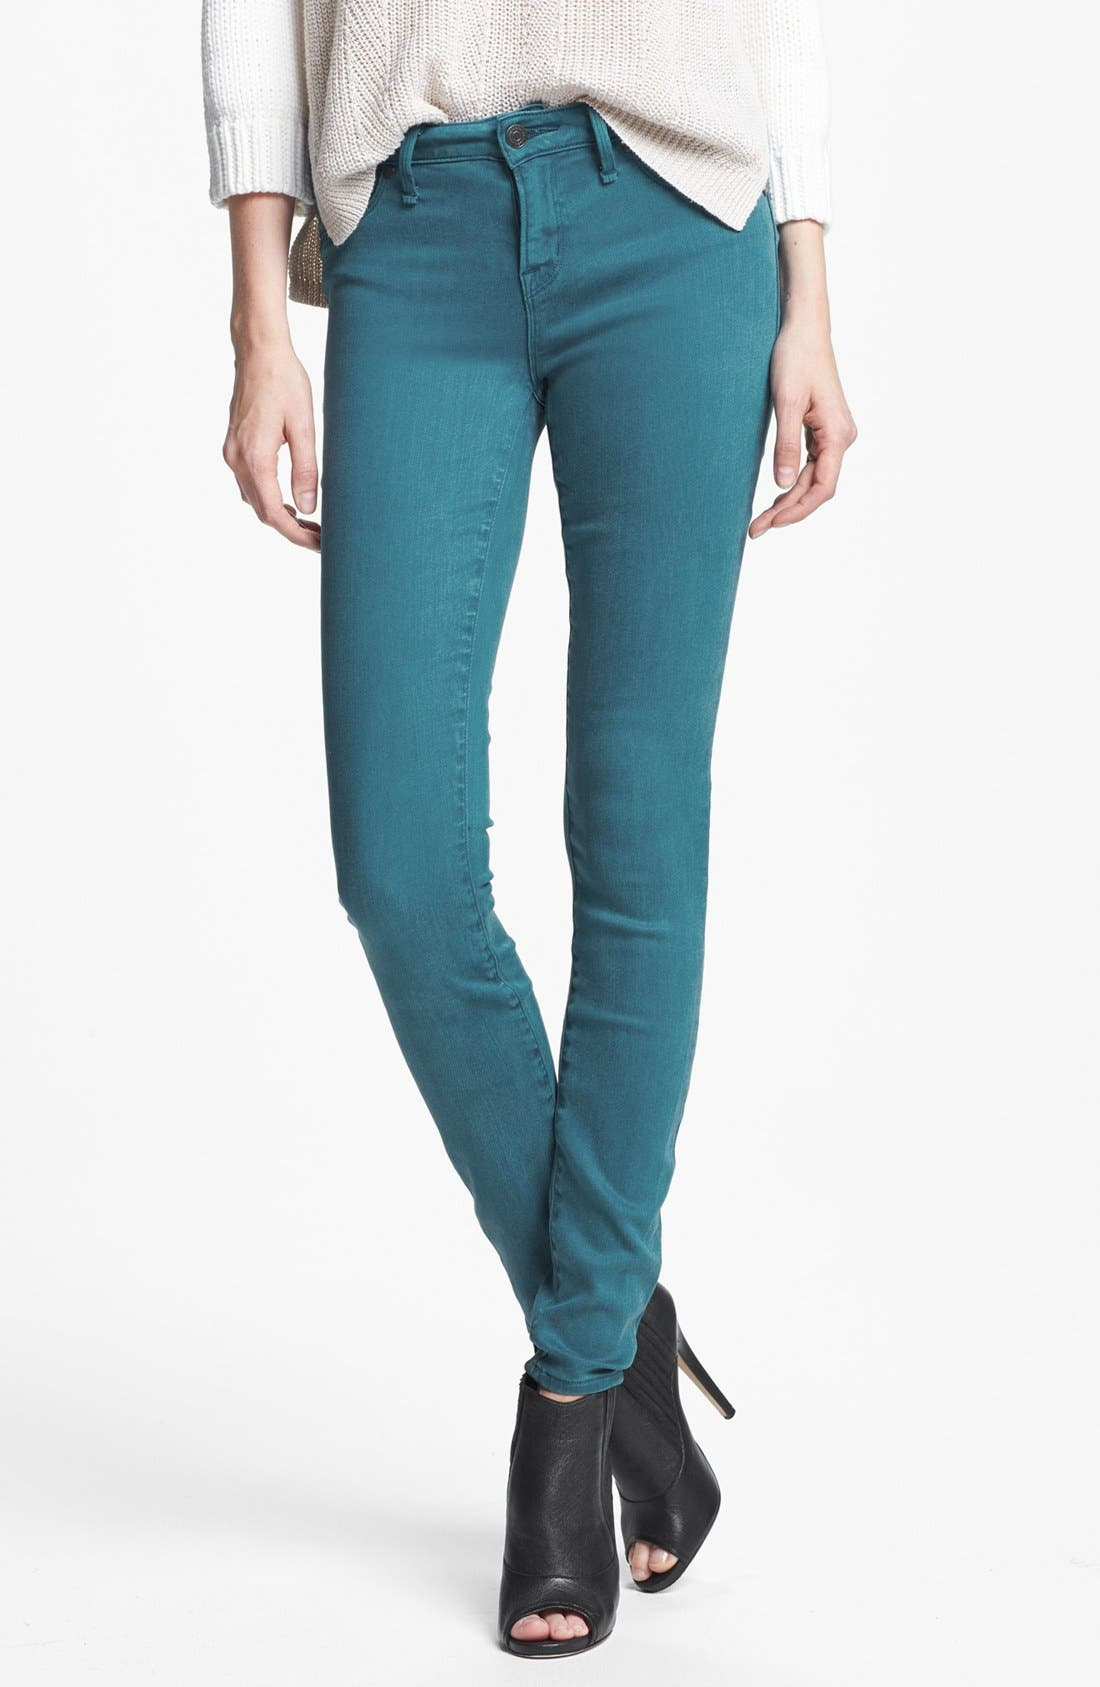 Alternate Image 1 Selected - MARC BY MARC JACOBS 'Stick' Colored Skinny Stretch Jeans (Horizon Teal)